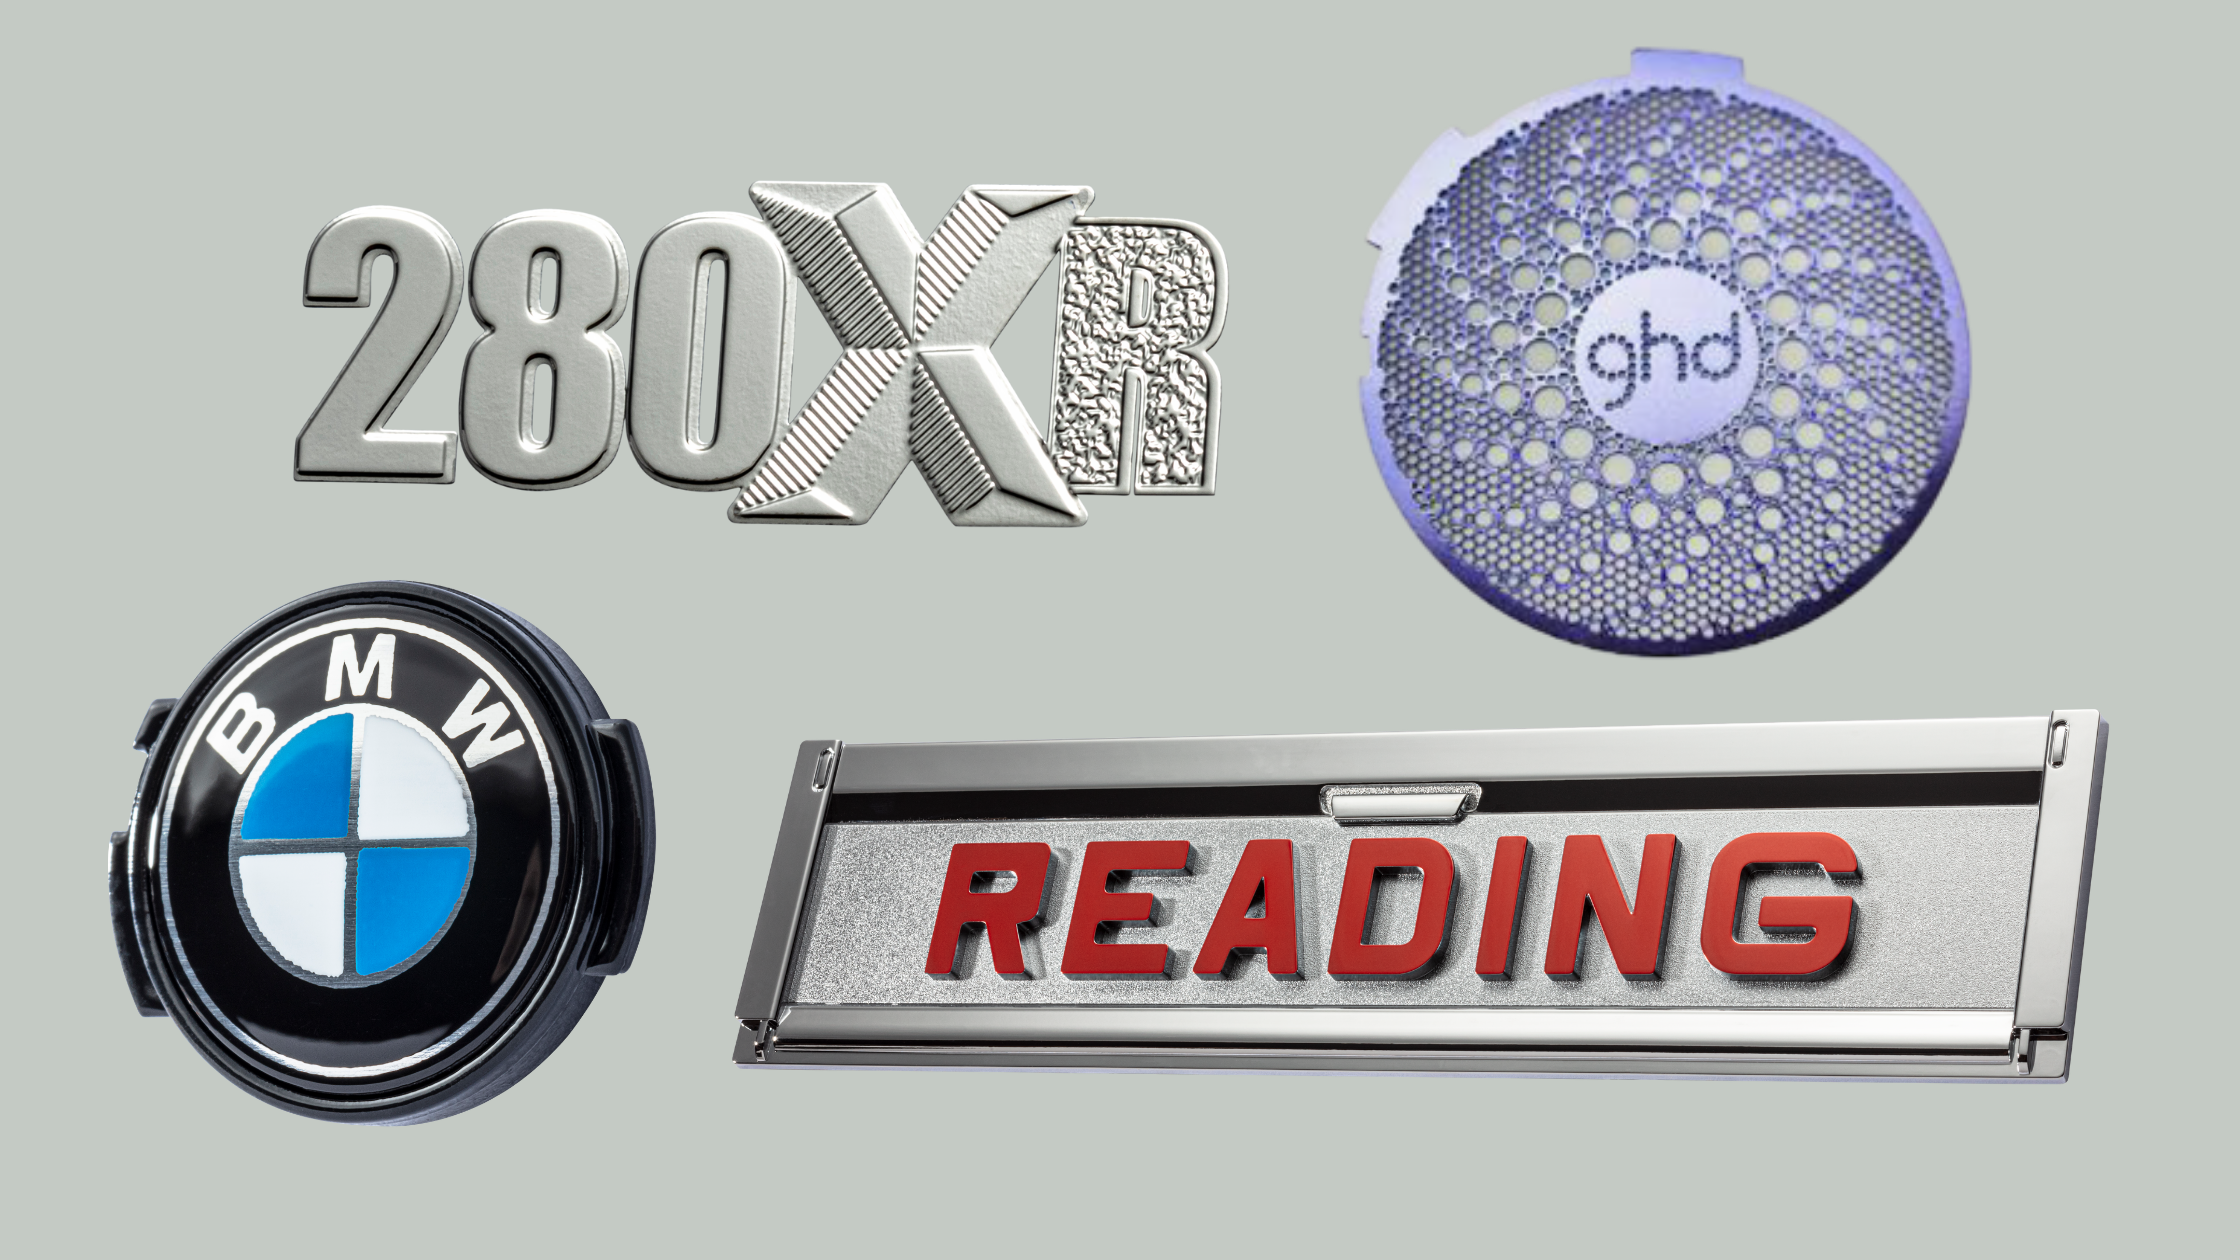 280XR thin chrome textured metal letters, purple etched circular nameplate with thru holes and ghd text, BMW logo circular button, rectangular chrome name plate with reading text in red font